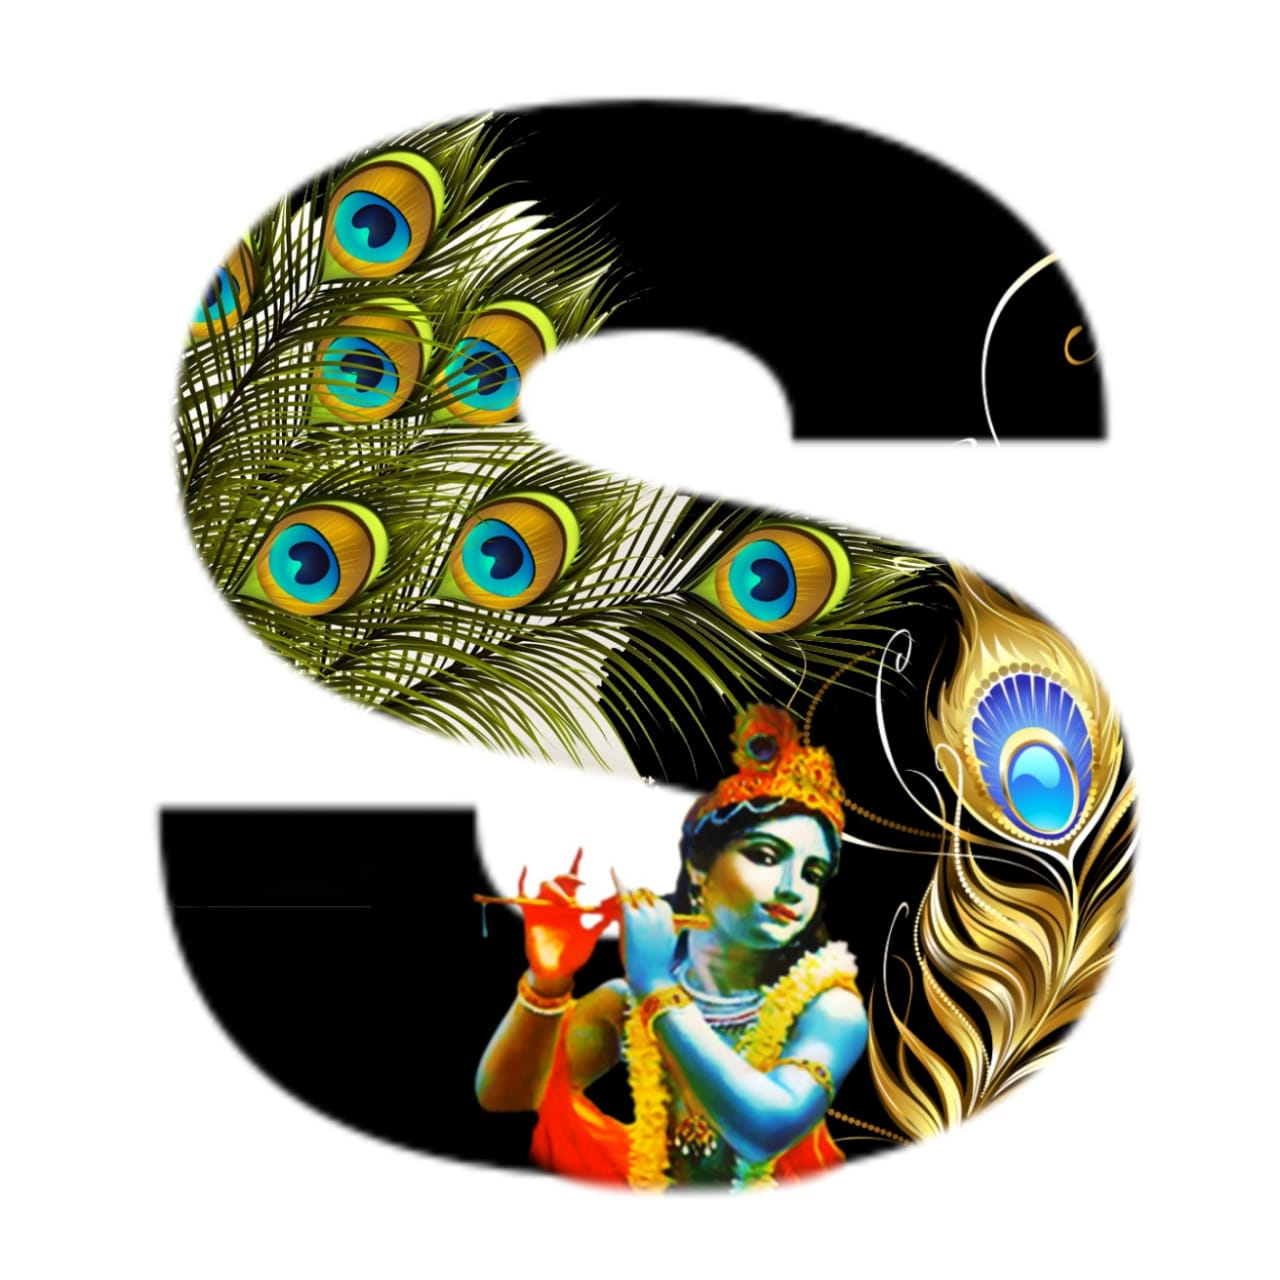 shree krishna alphabet s images